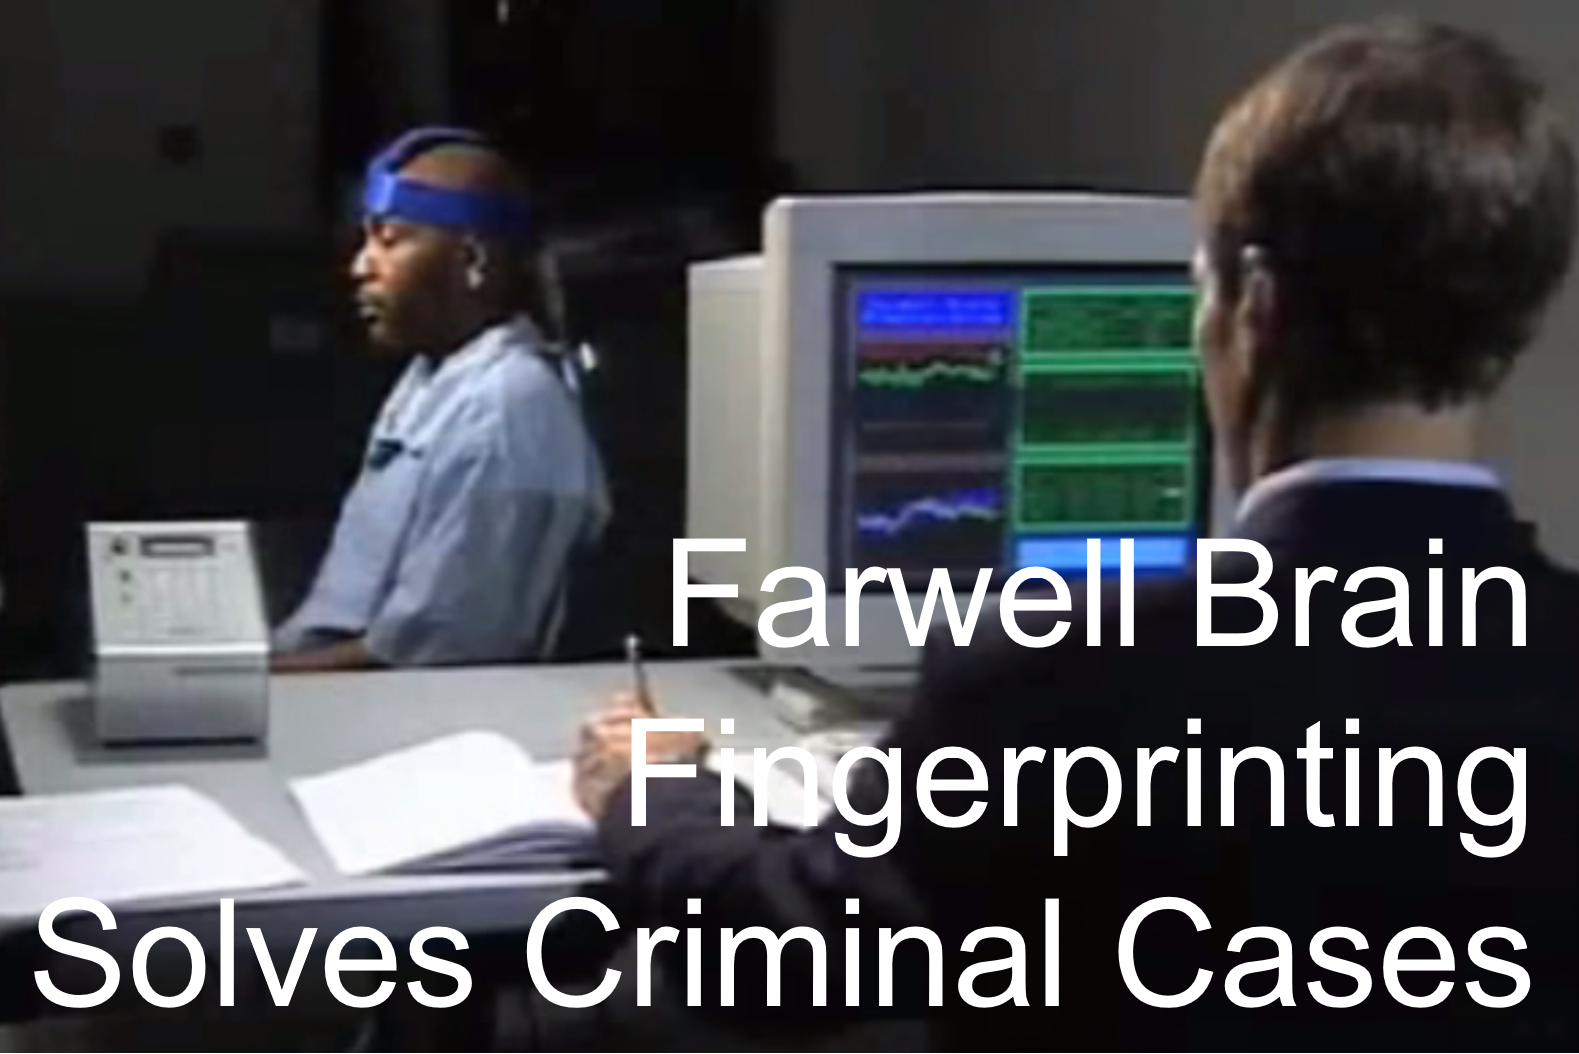 Farwell Brain Fingerprinting Solves Cases Pic